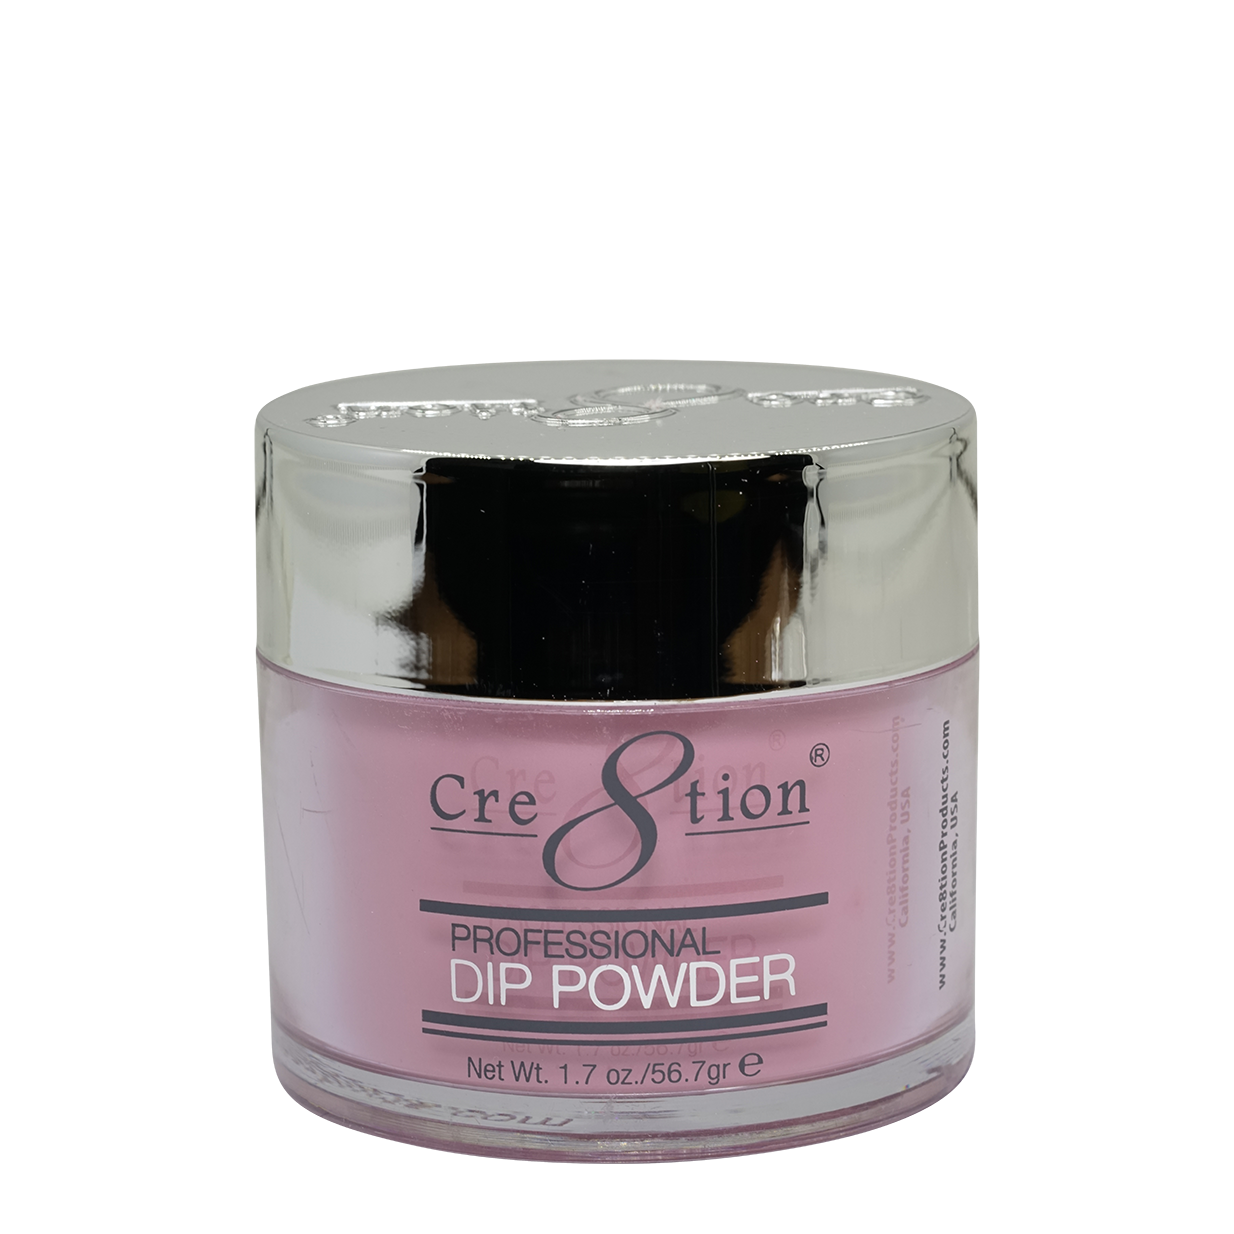 Cre8tion Matching Dip Powder 1.7oz 14 UNMISTAKABLE